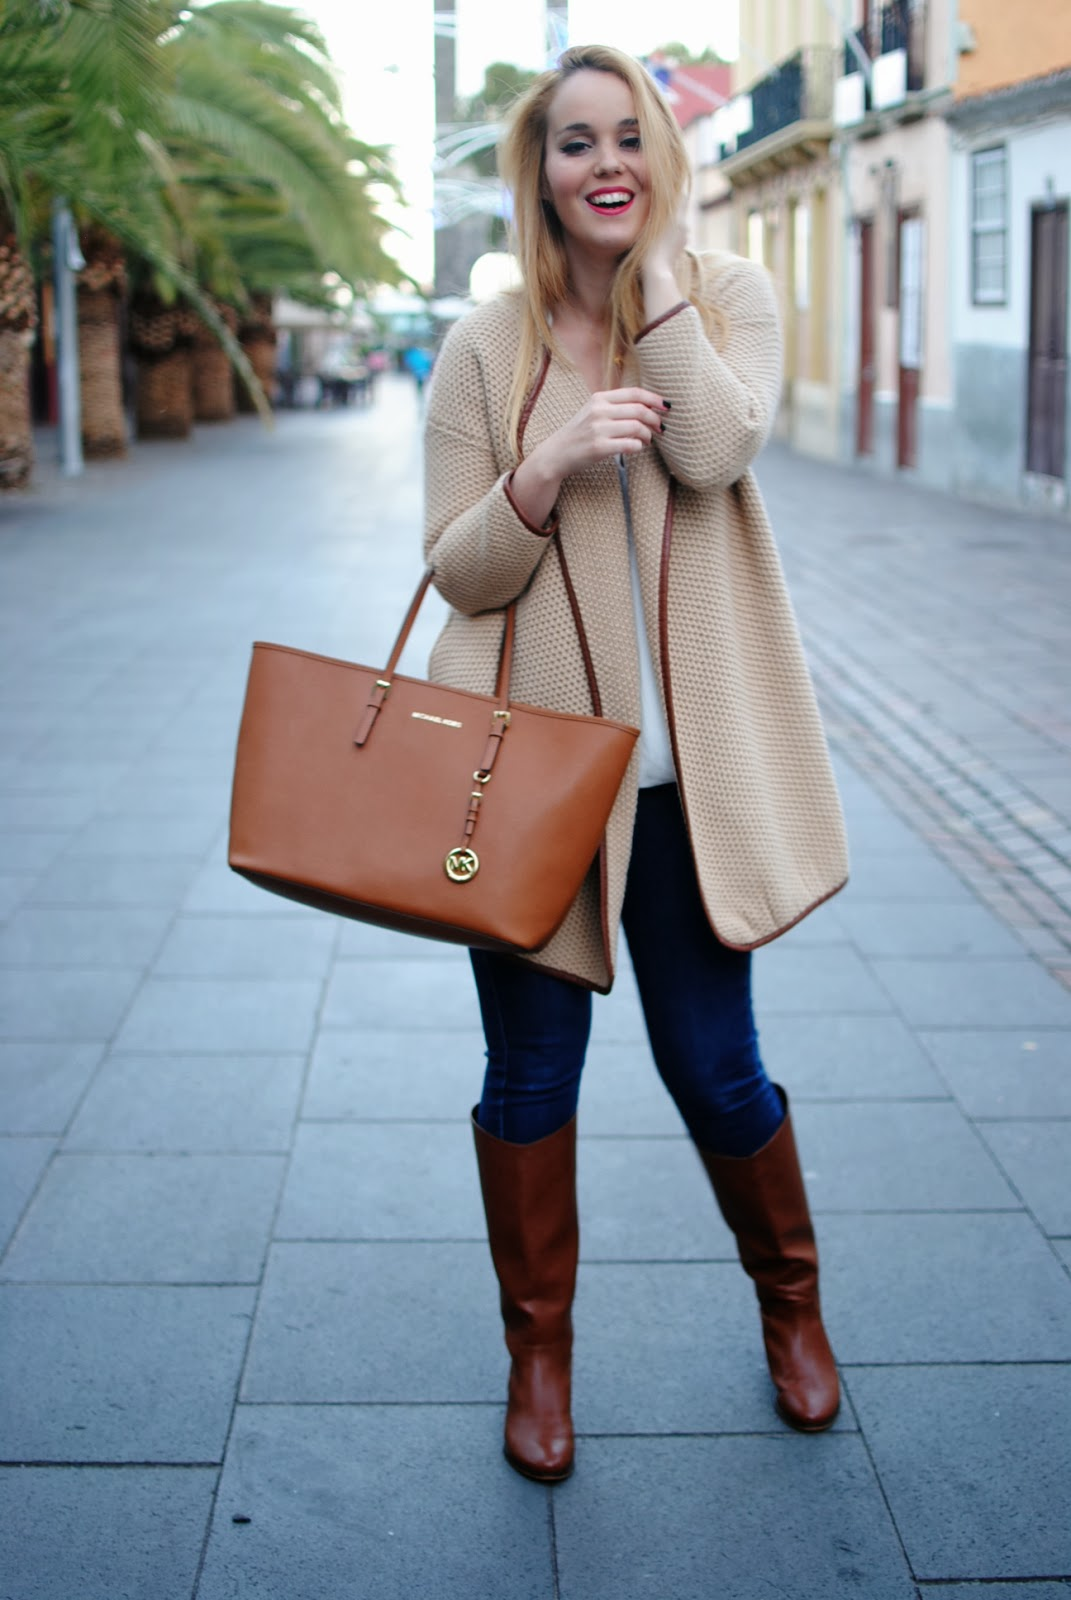 nery hdez, tiny jewels, michael kors blogger, jana reinhardt, look cómodo, look simple,